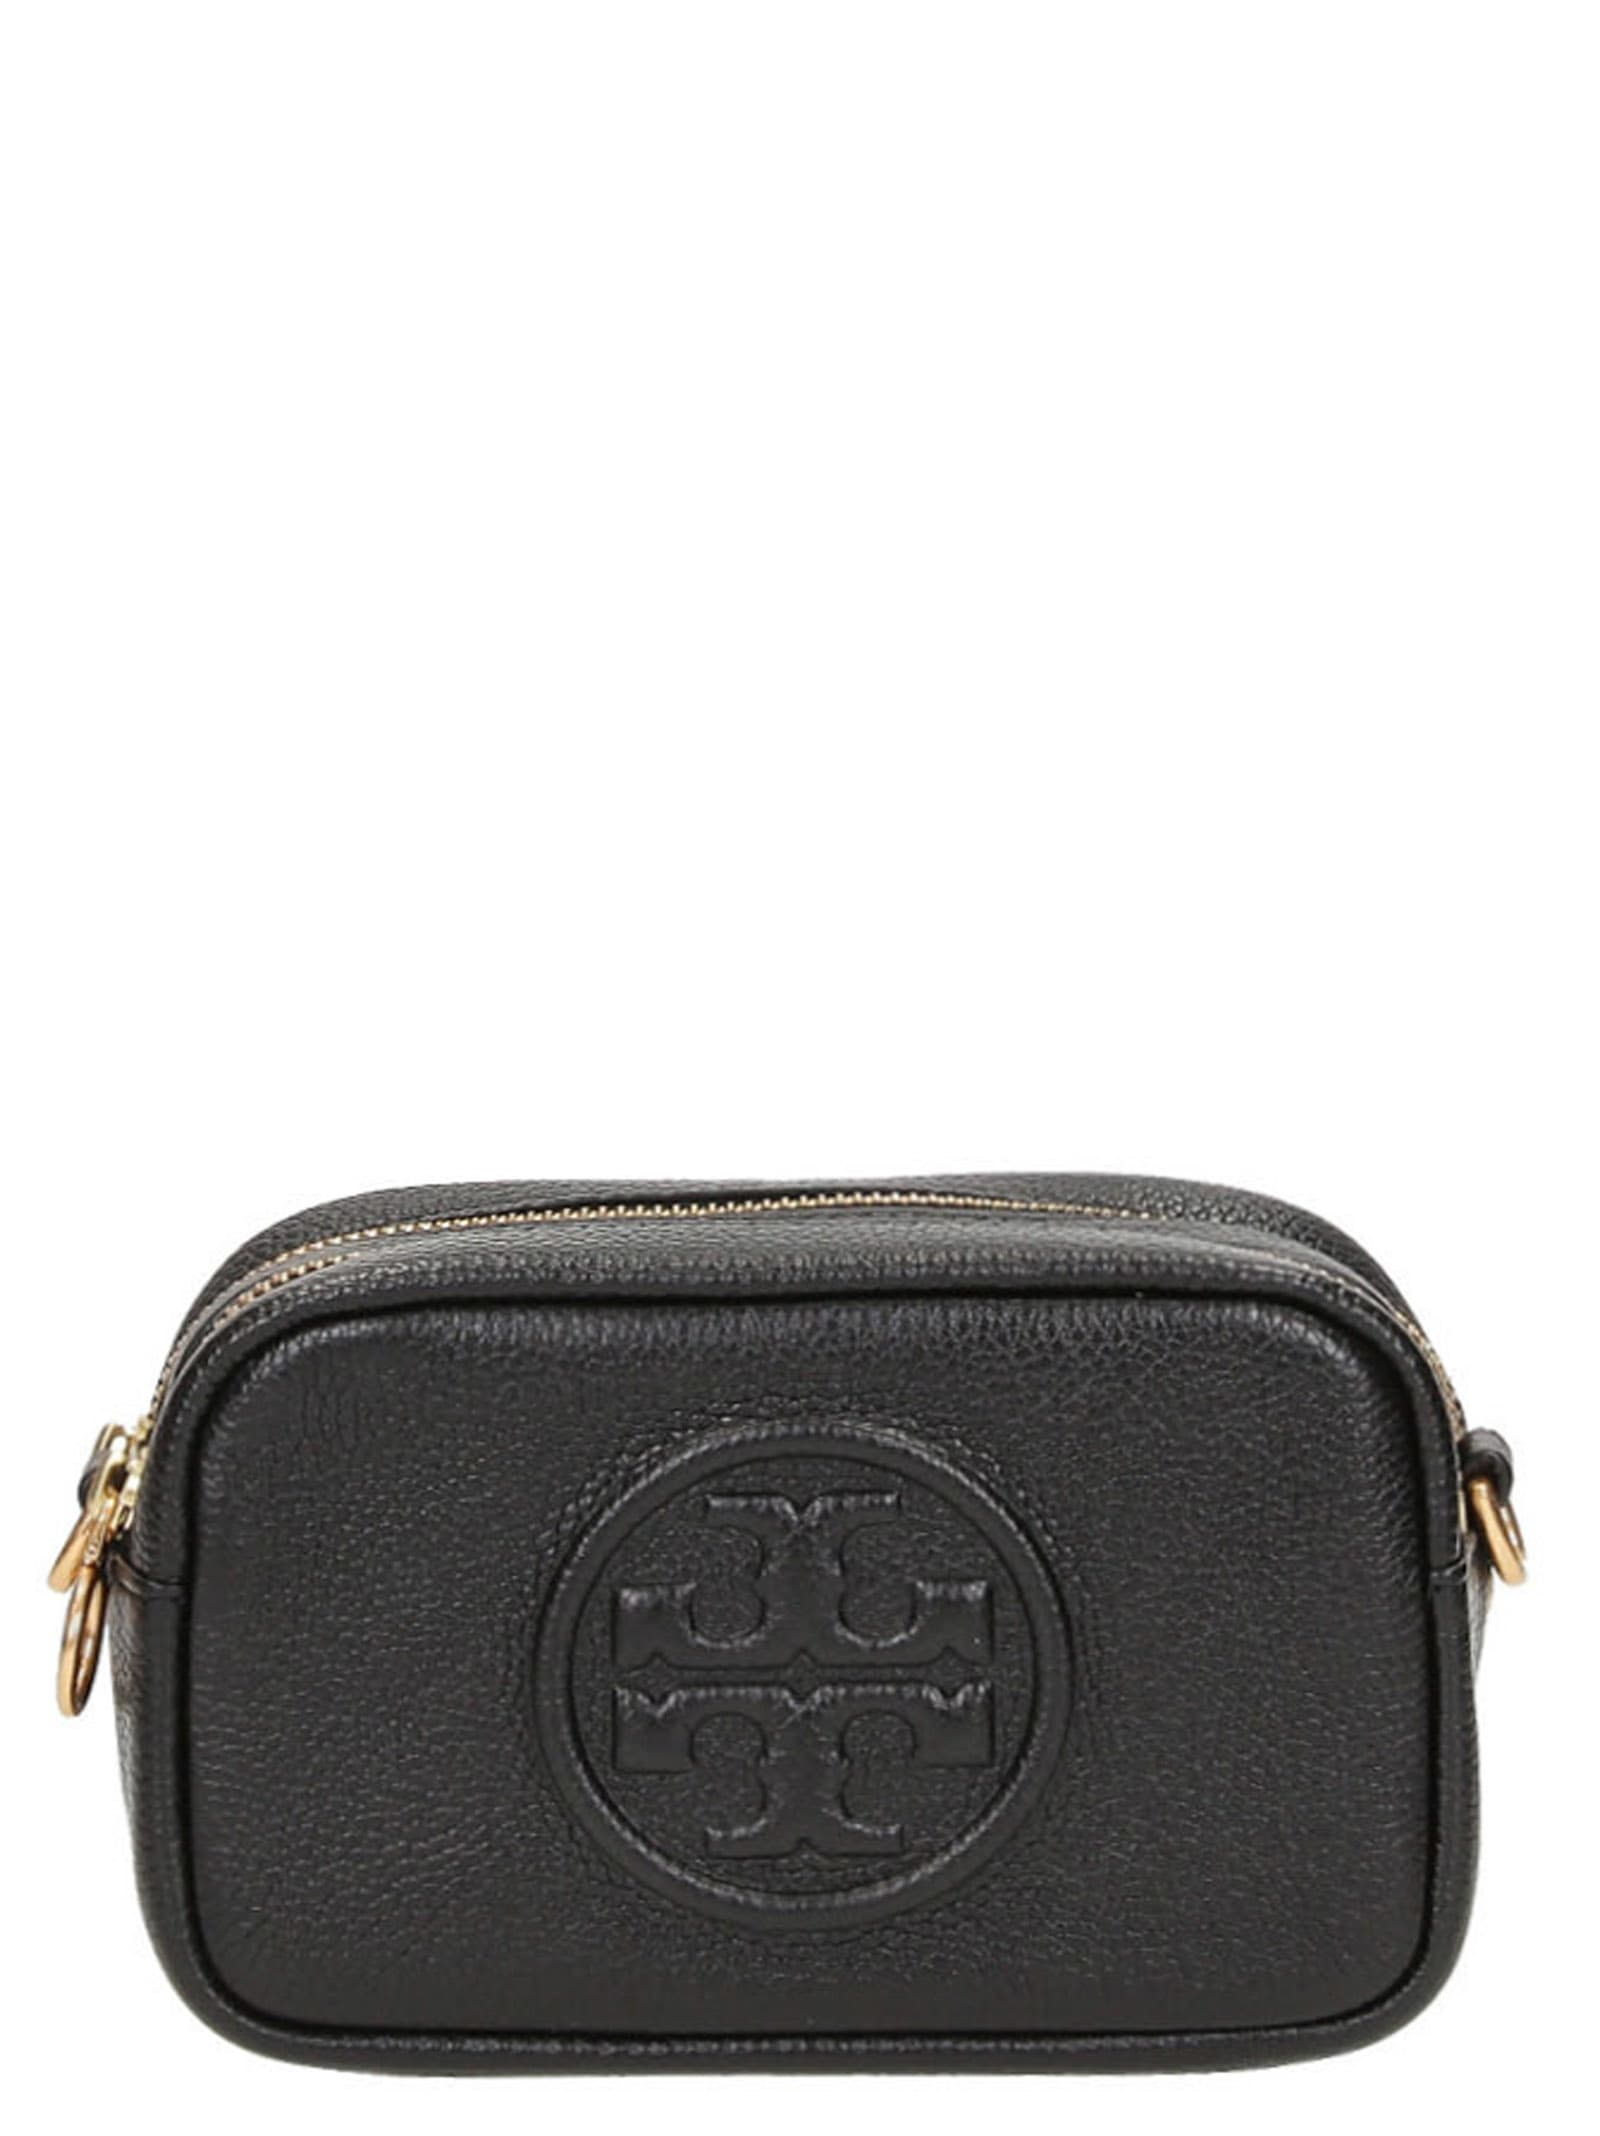 TORY BURCH PERRY BOMBÈ BAG